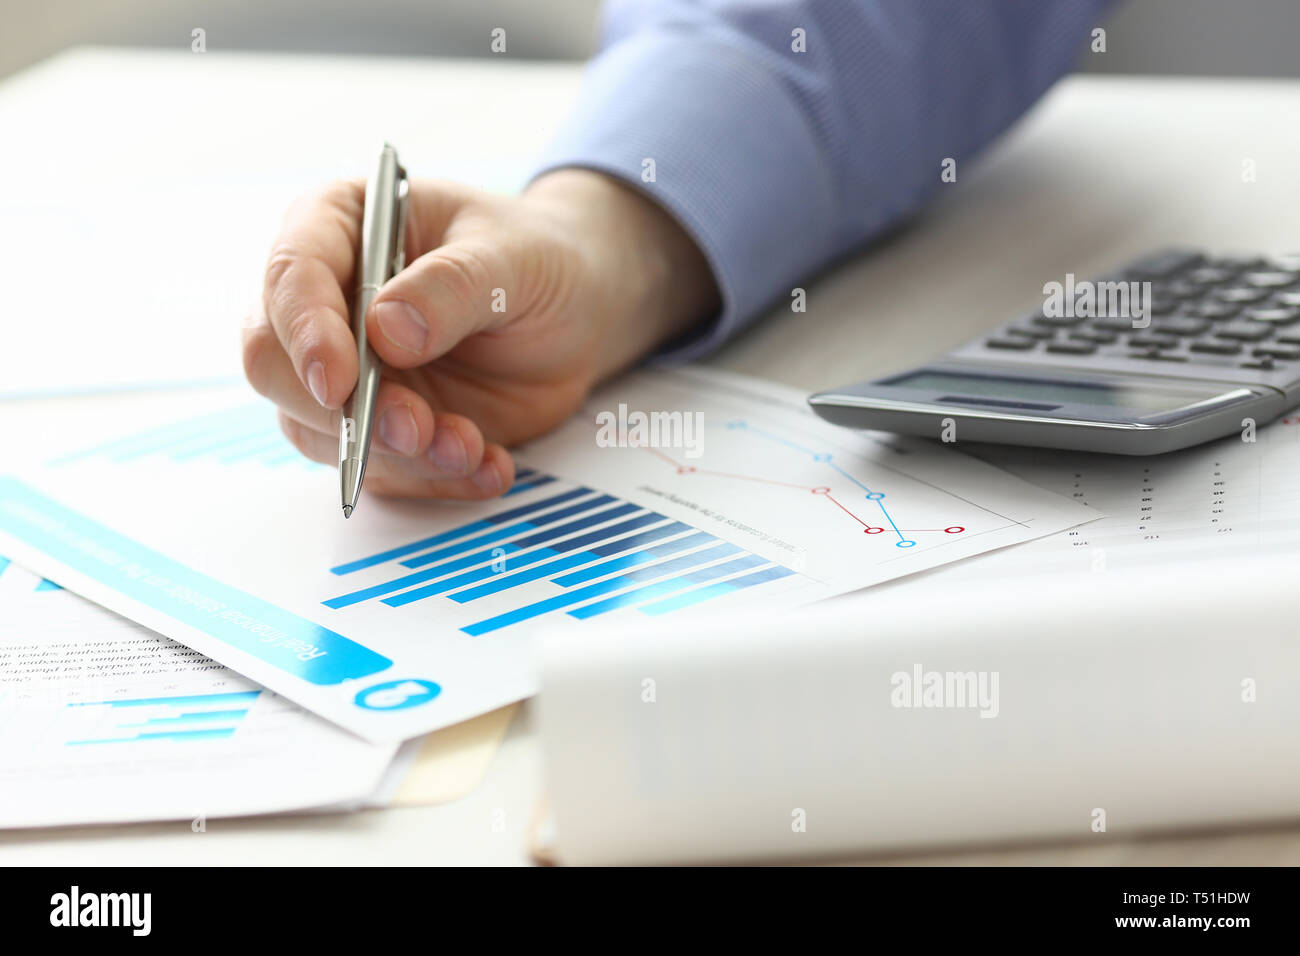 Accountant Manager Controlling Expense Income - Stock Image